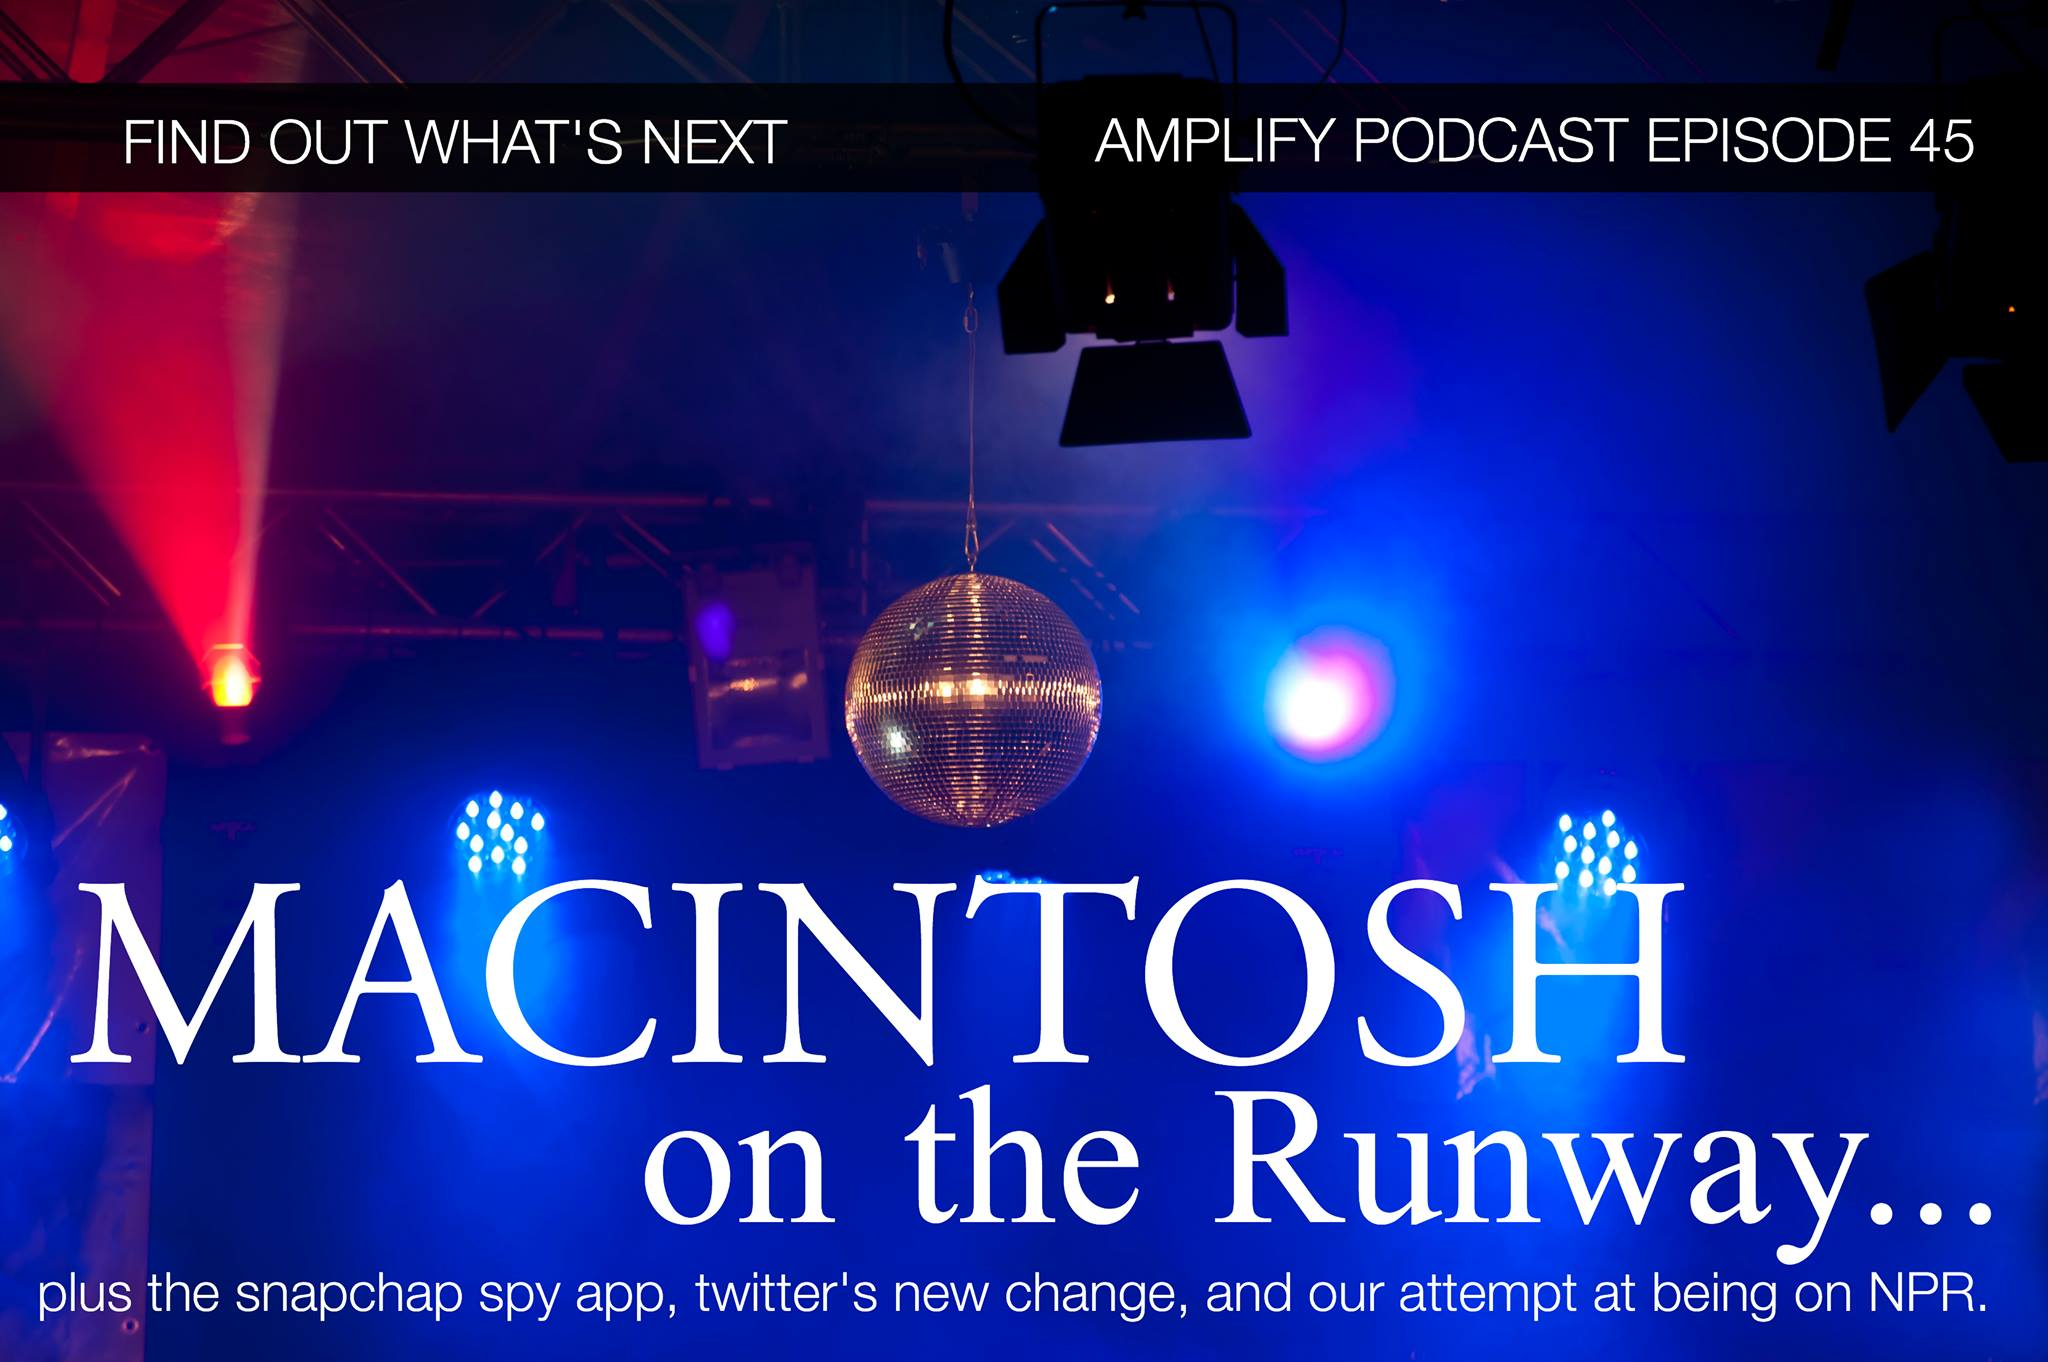 Macintosh on the Runway – Episode 45